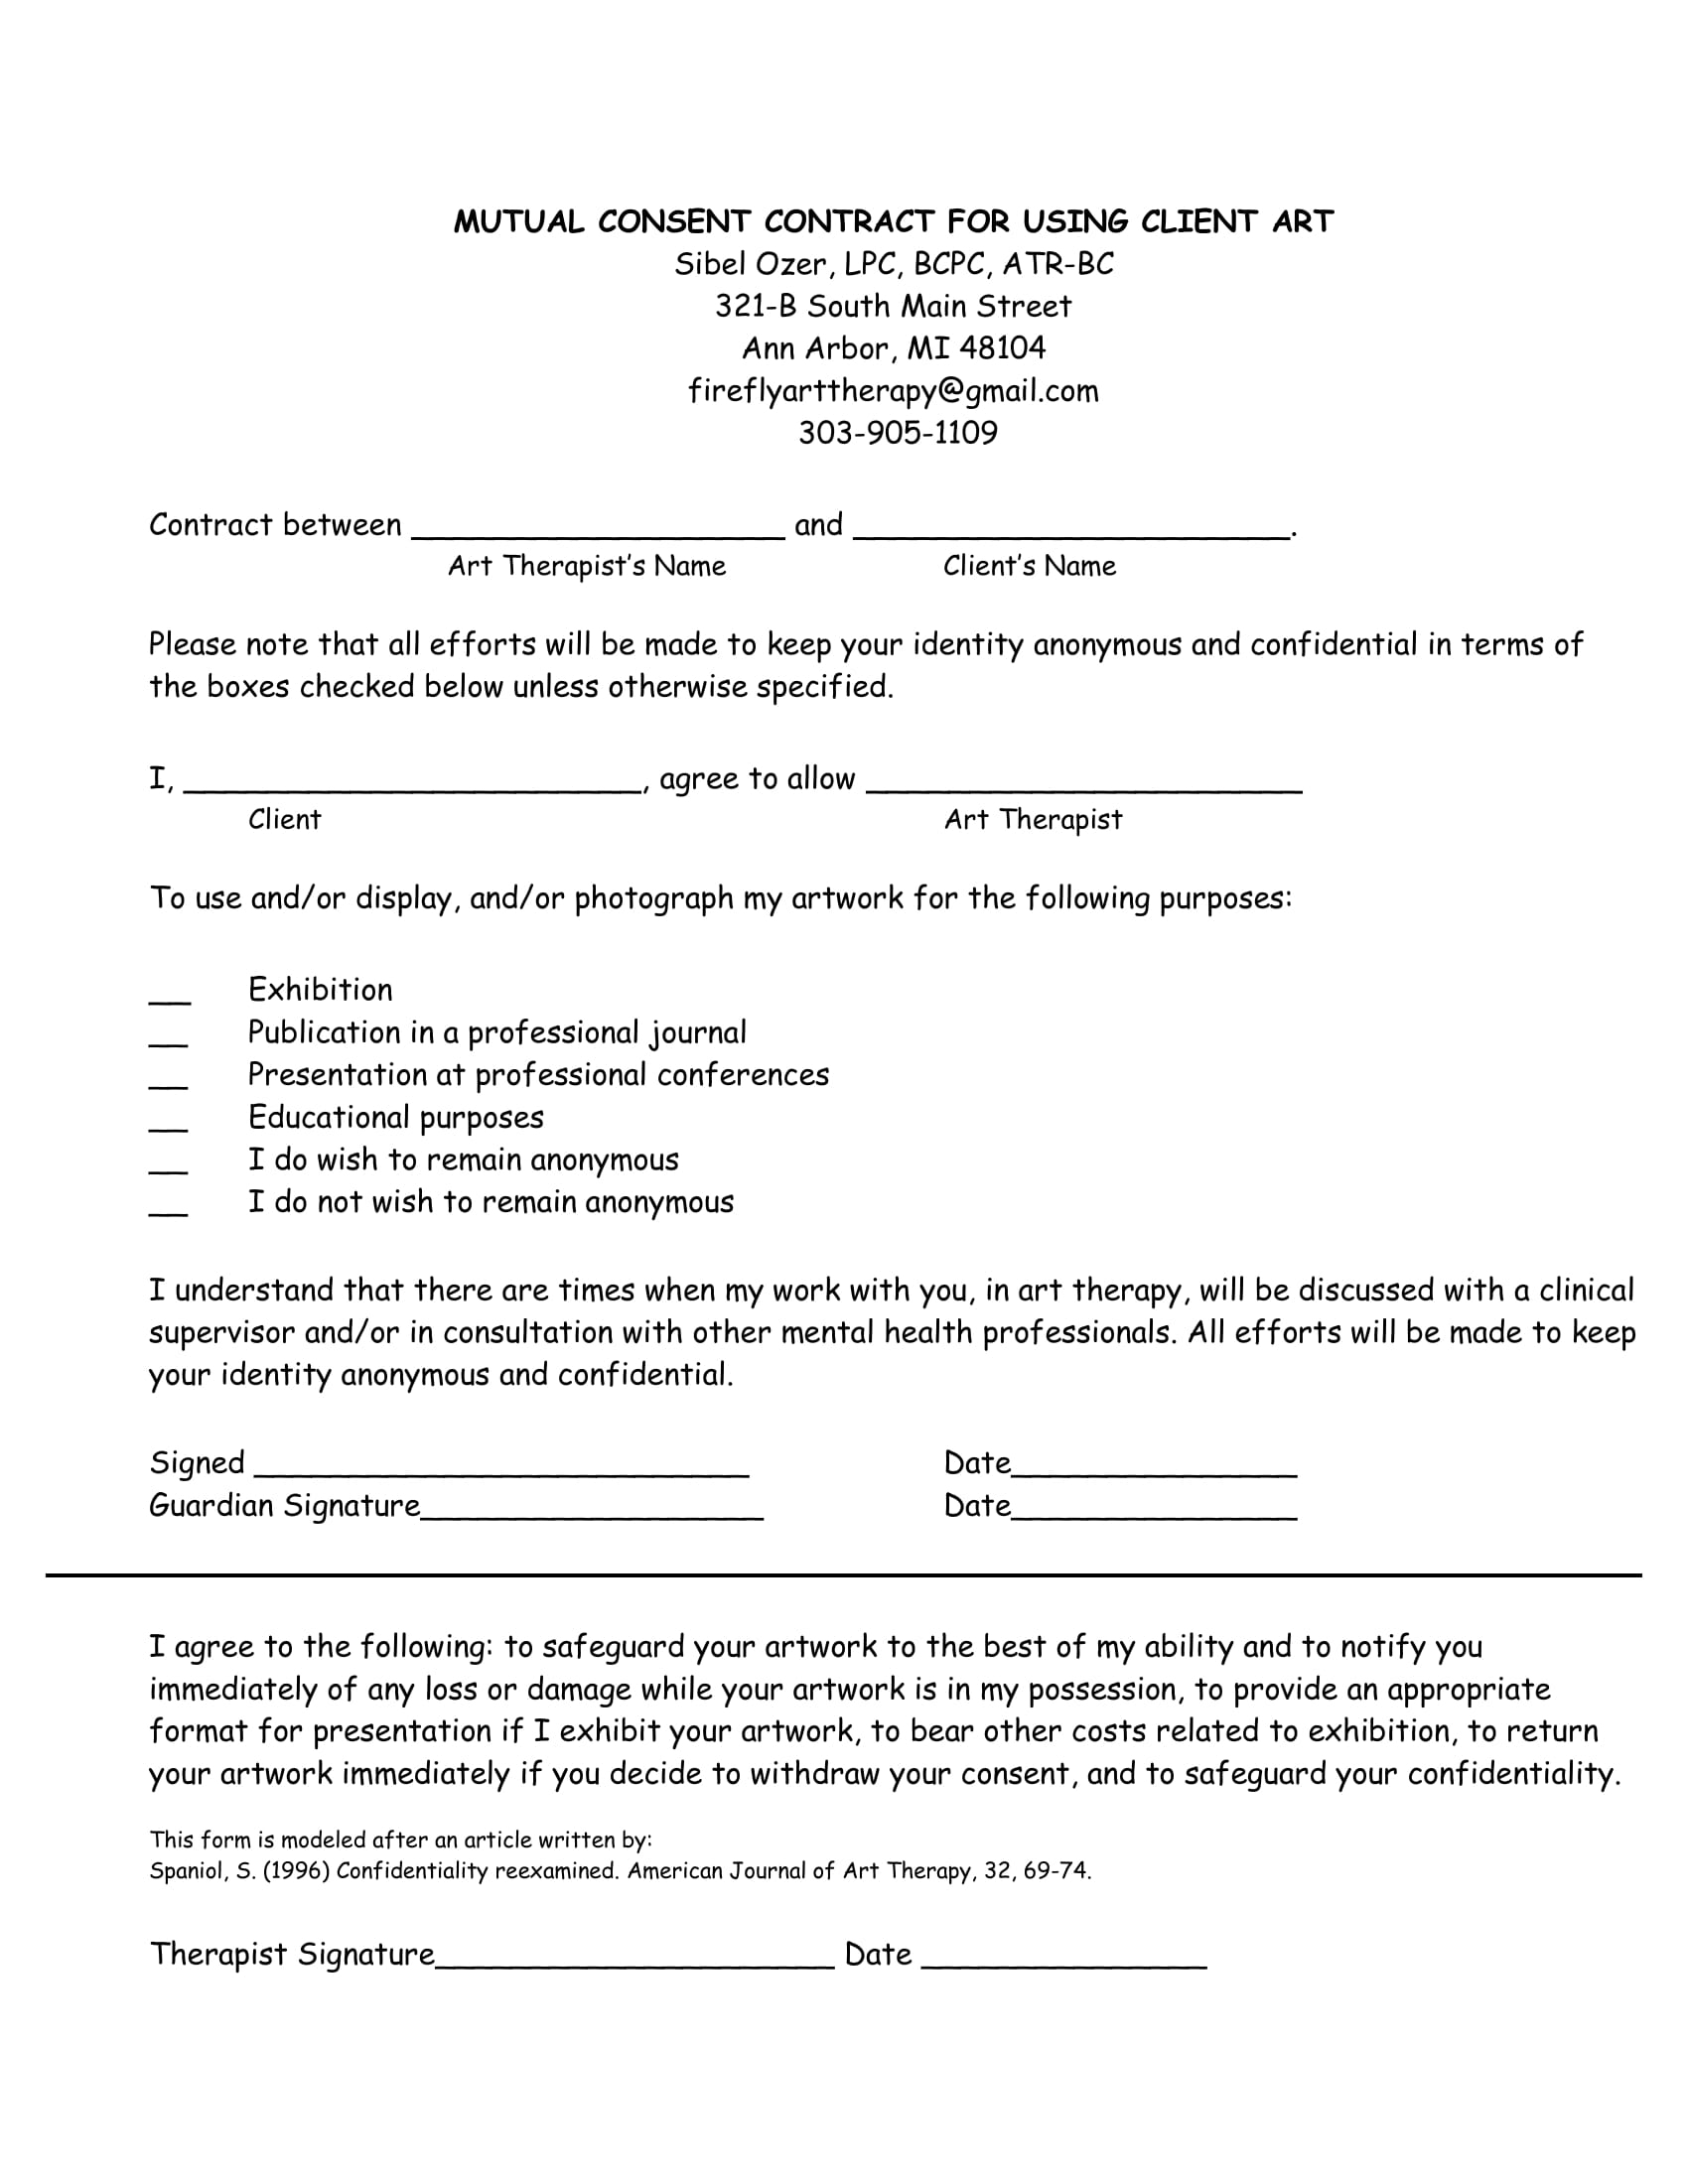 art usage mutual consent contract form 1